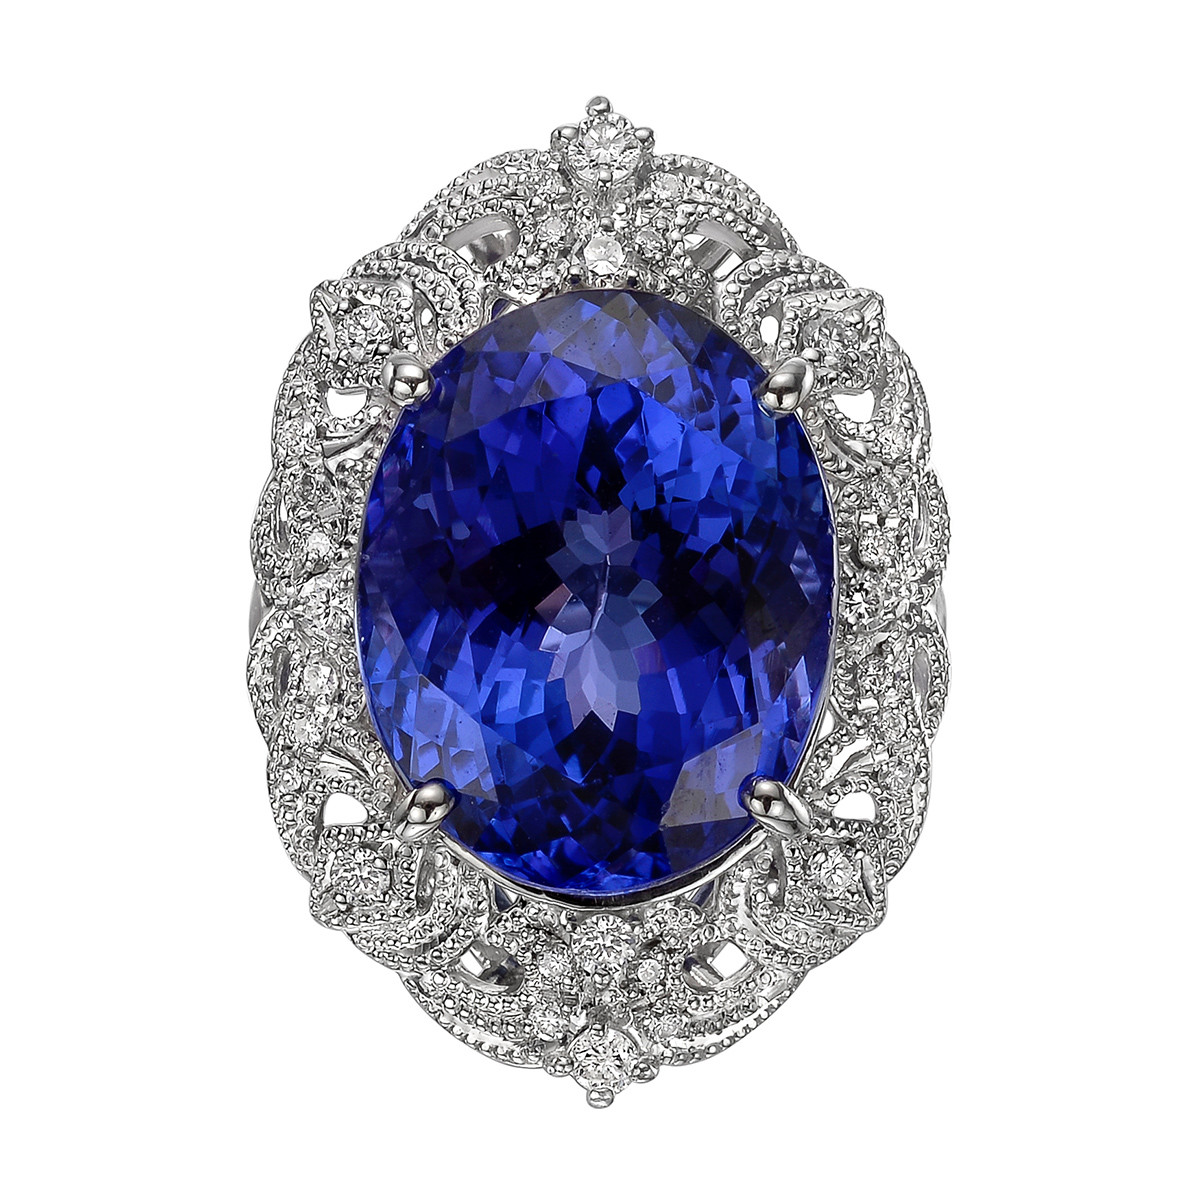 18.03 Carat Tanzanite & Diamond Cocktail Ring